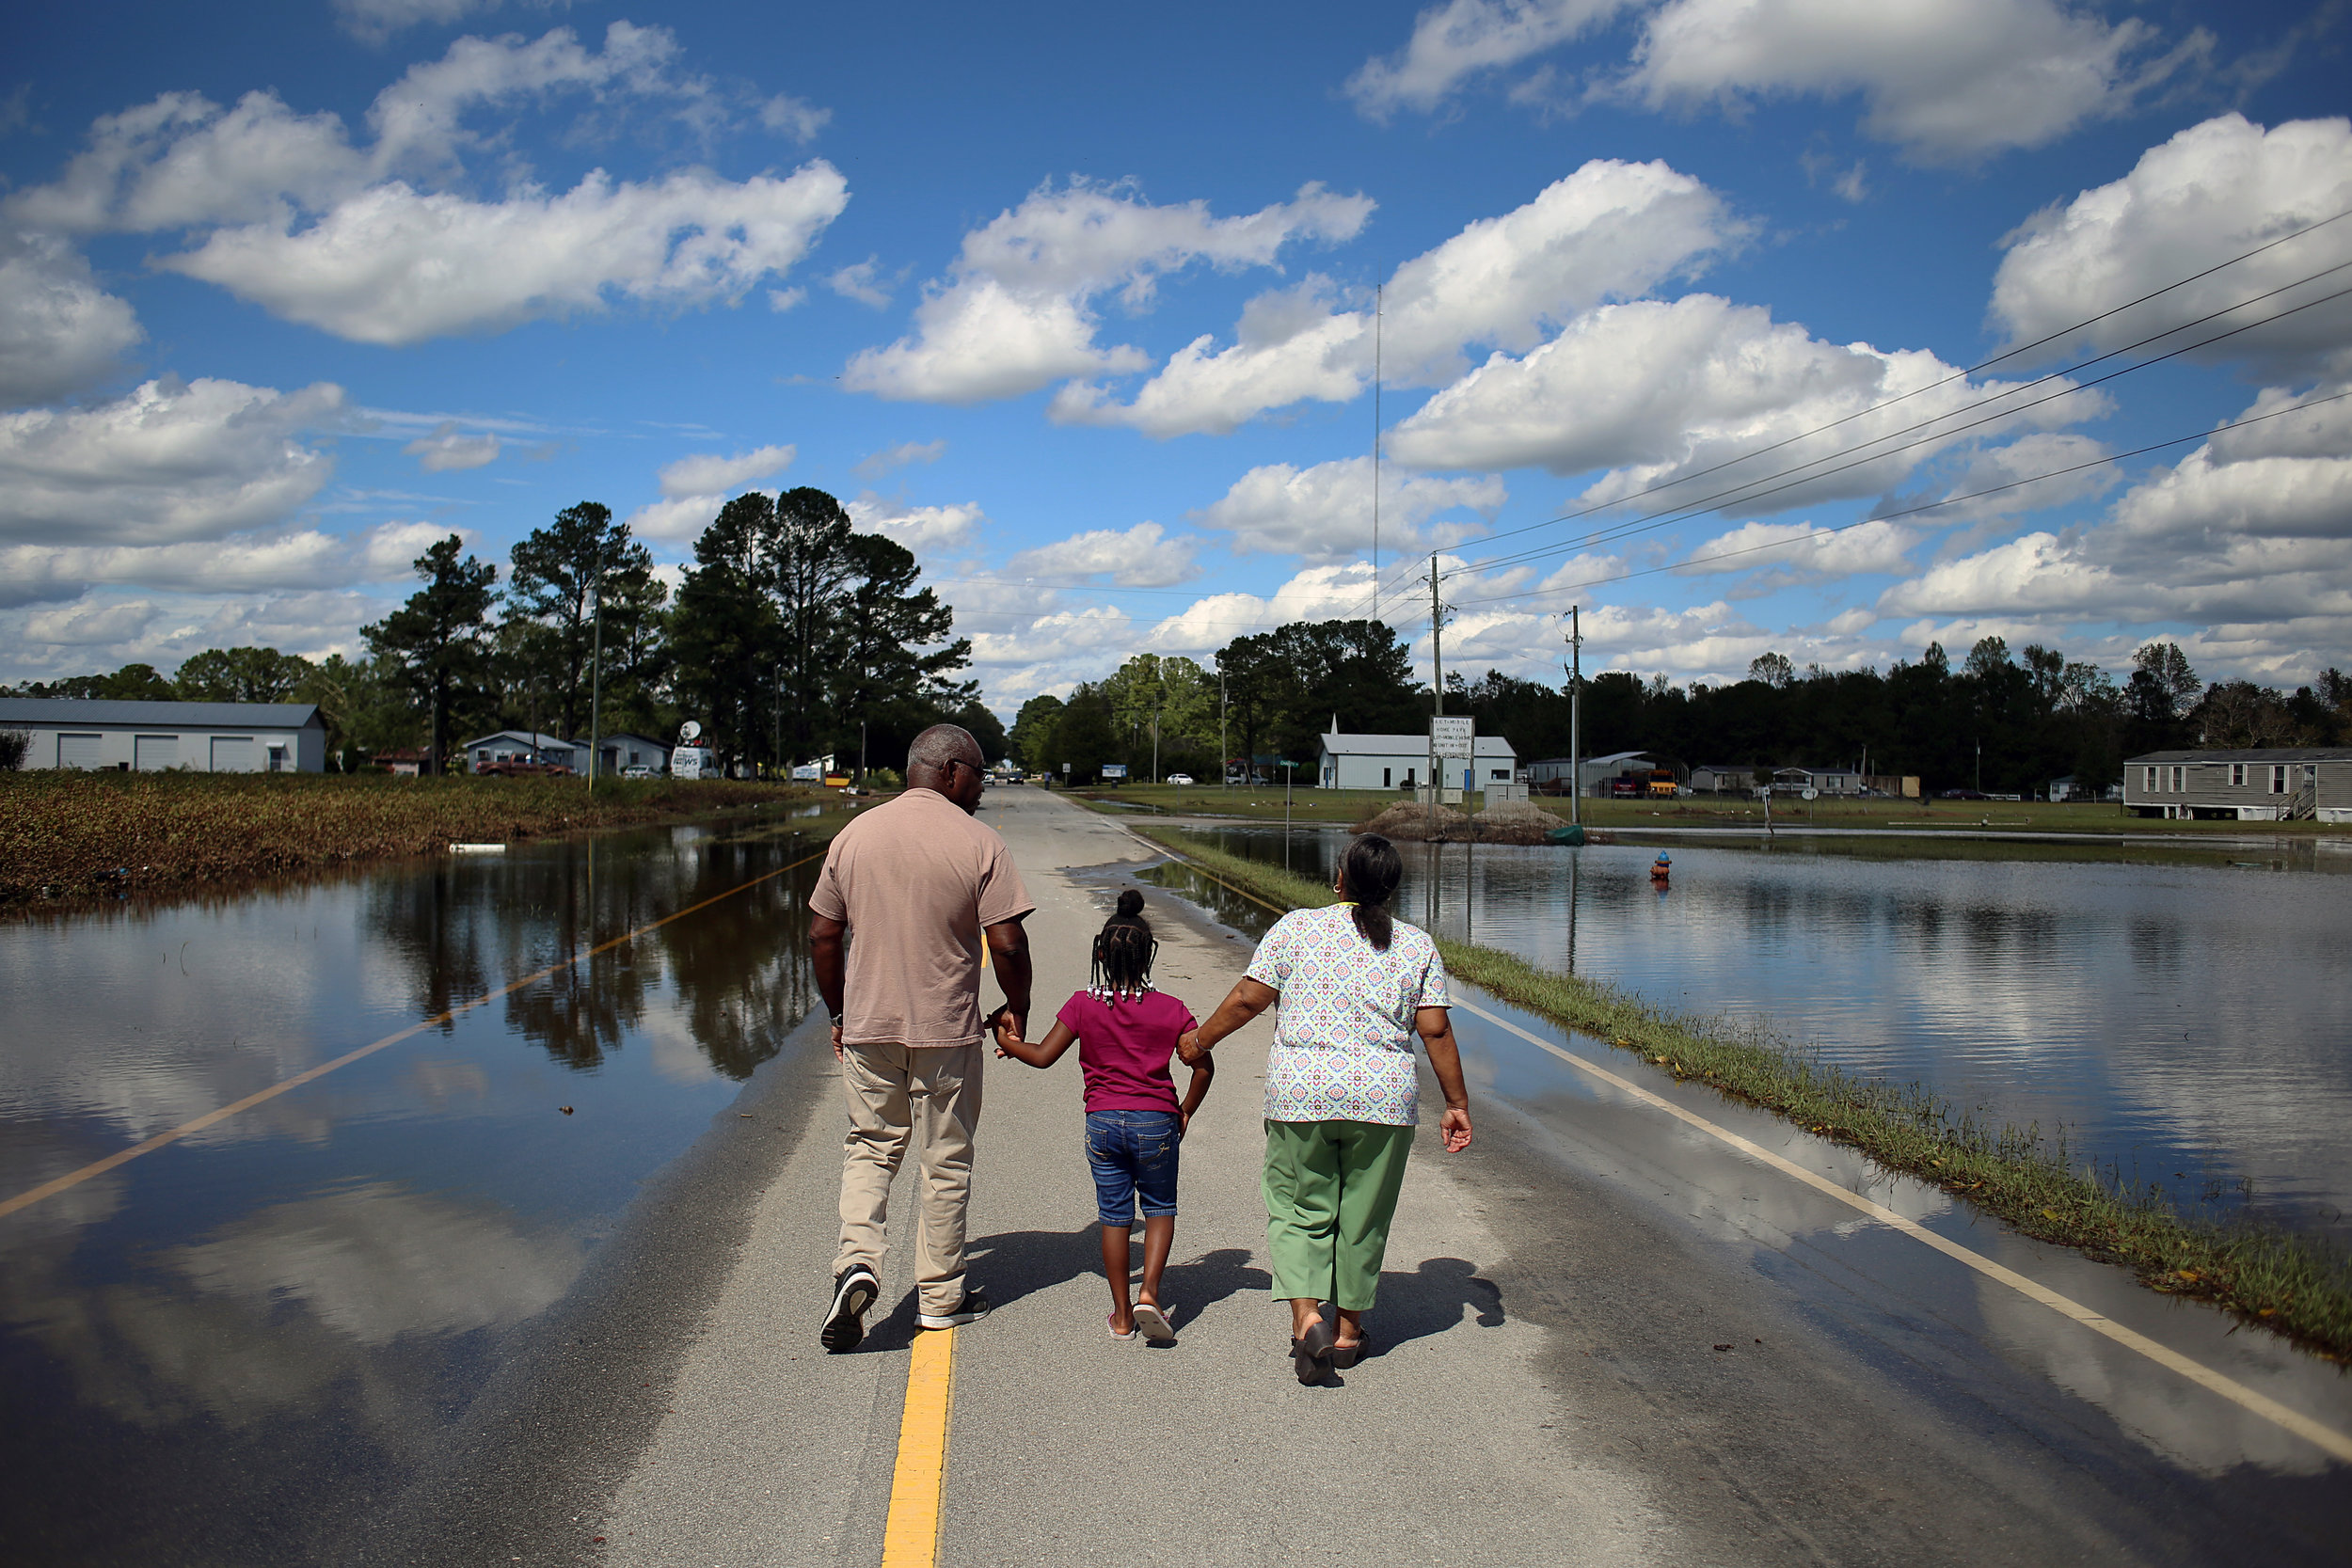 "Allen Chapman, 71, Fannie Chapman, 72, and their granddaughter, Maryah Chapman, 7, walk down Highway 41 after viewing their flooded home, Sept. 18, in Trenton, N.C. ""We've been here 51 years on this street,"" Fannie said. ""This is our first time back since it happened. It flooded in '99, but not like this. It's gone again."" Allen Chapman vowed to persevere, but wasn't confident in FEMA's disaster assistance, and wondered how people were even able to pay for flood insurance. ""Out here, we're low on the totem pole,"" he said. ""It ain't gonna happen overnight."" The water was too deep for Allen to make it into his home, but he know it was a total loss. ""You're looking at what I got,"" he said. The family evacuated to Raleigh for the storm."